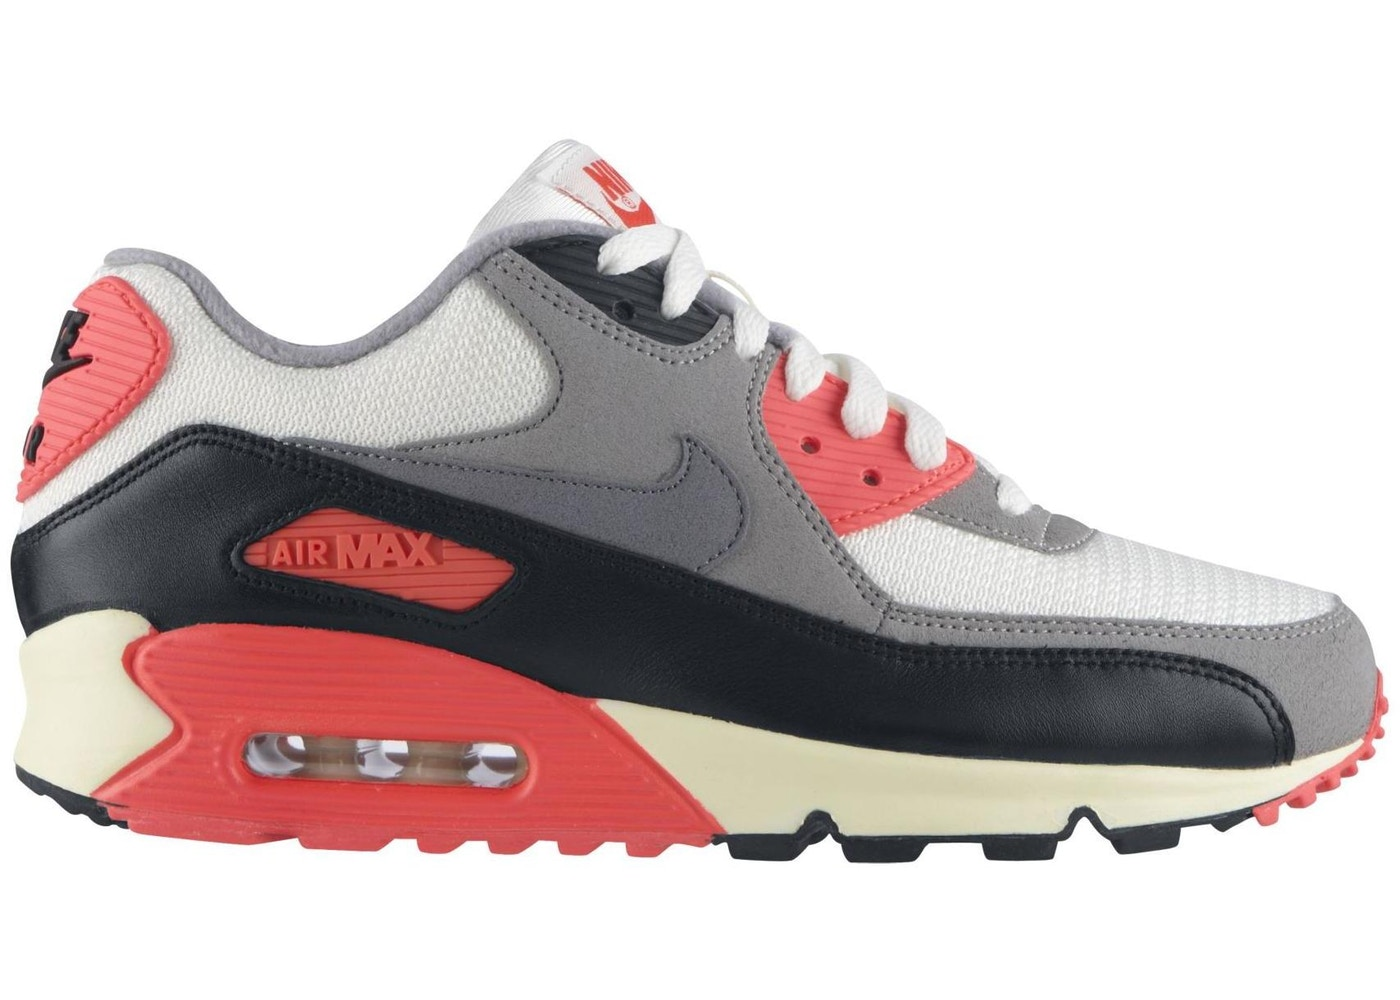 huge selection of 16cd0 fccd8 Air Max 90 Infrared Vintage (2013)